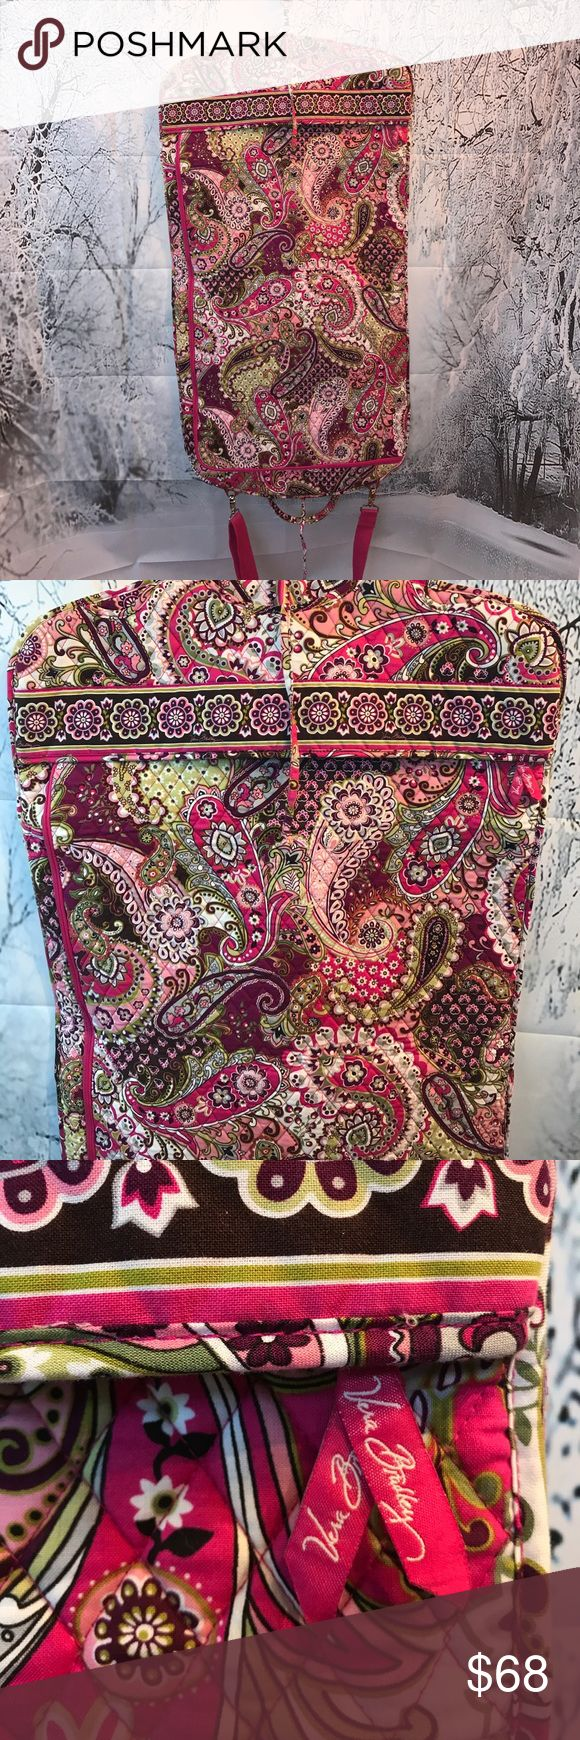 Vera Bradley Garment Bag ❤️ NWOT gorgeous vera Bradley garment travel bag. Has Large additional Outer zipper pocket area. Handle as well as adjustable strap for caring very unique have not seen one of these. ❤️ Vera Bradley Bags Travel Bags